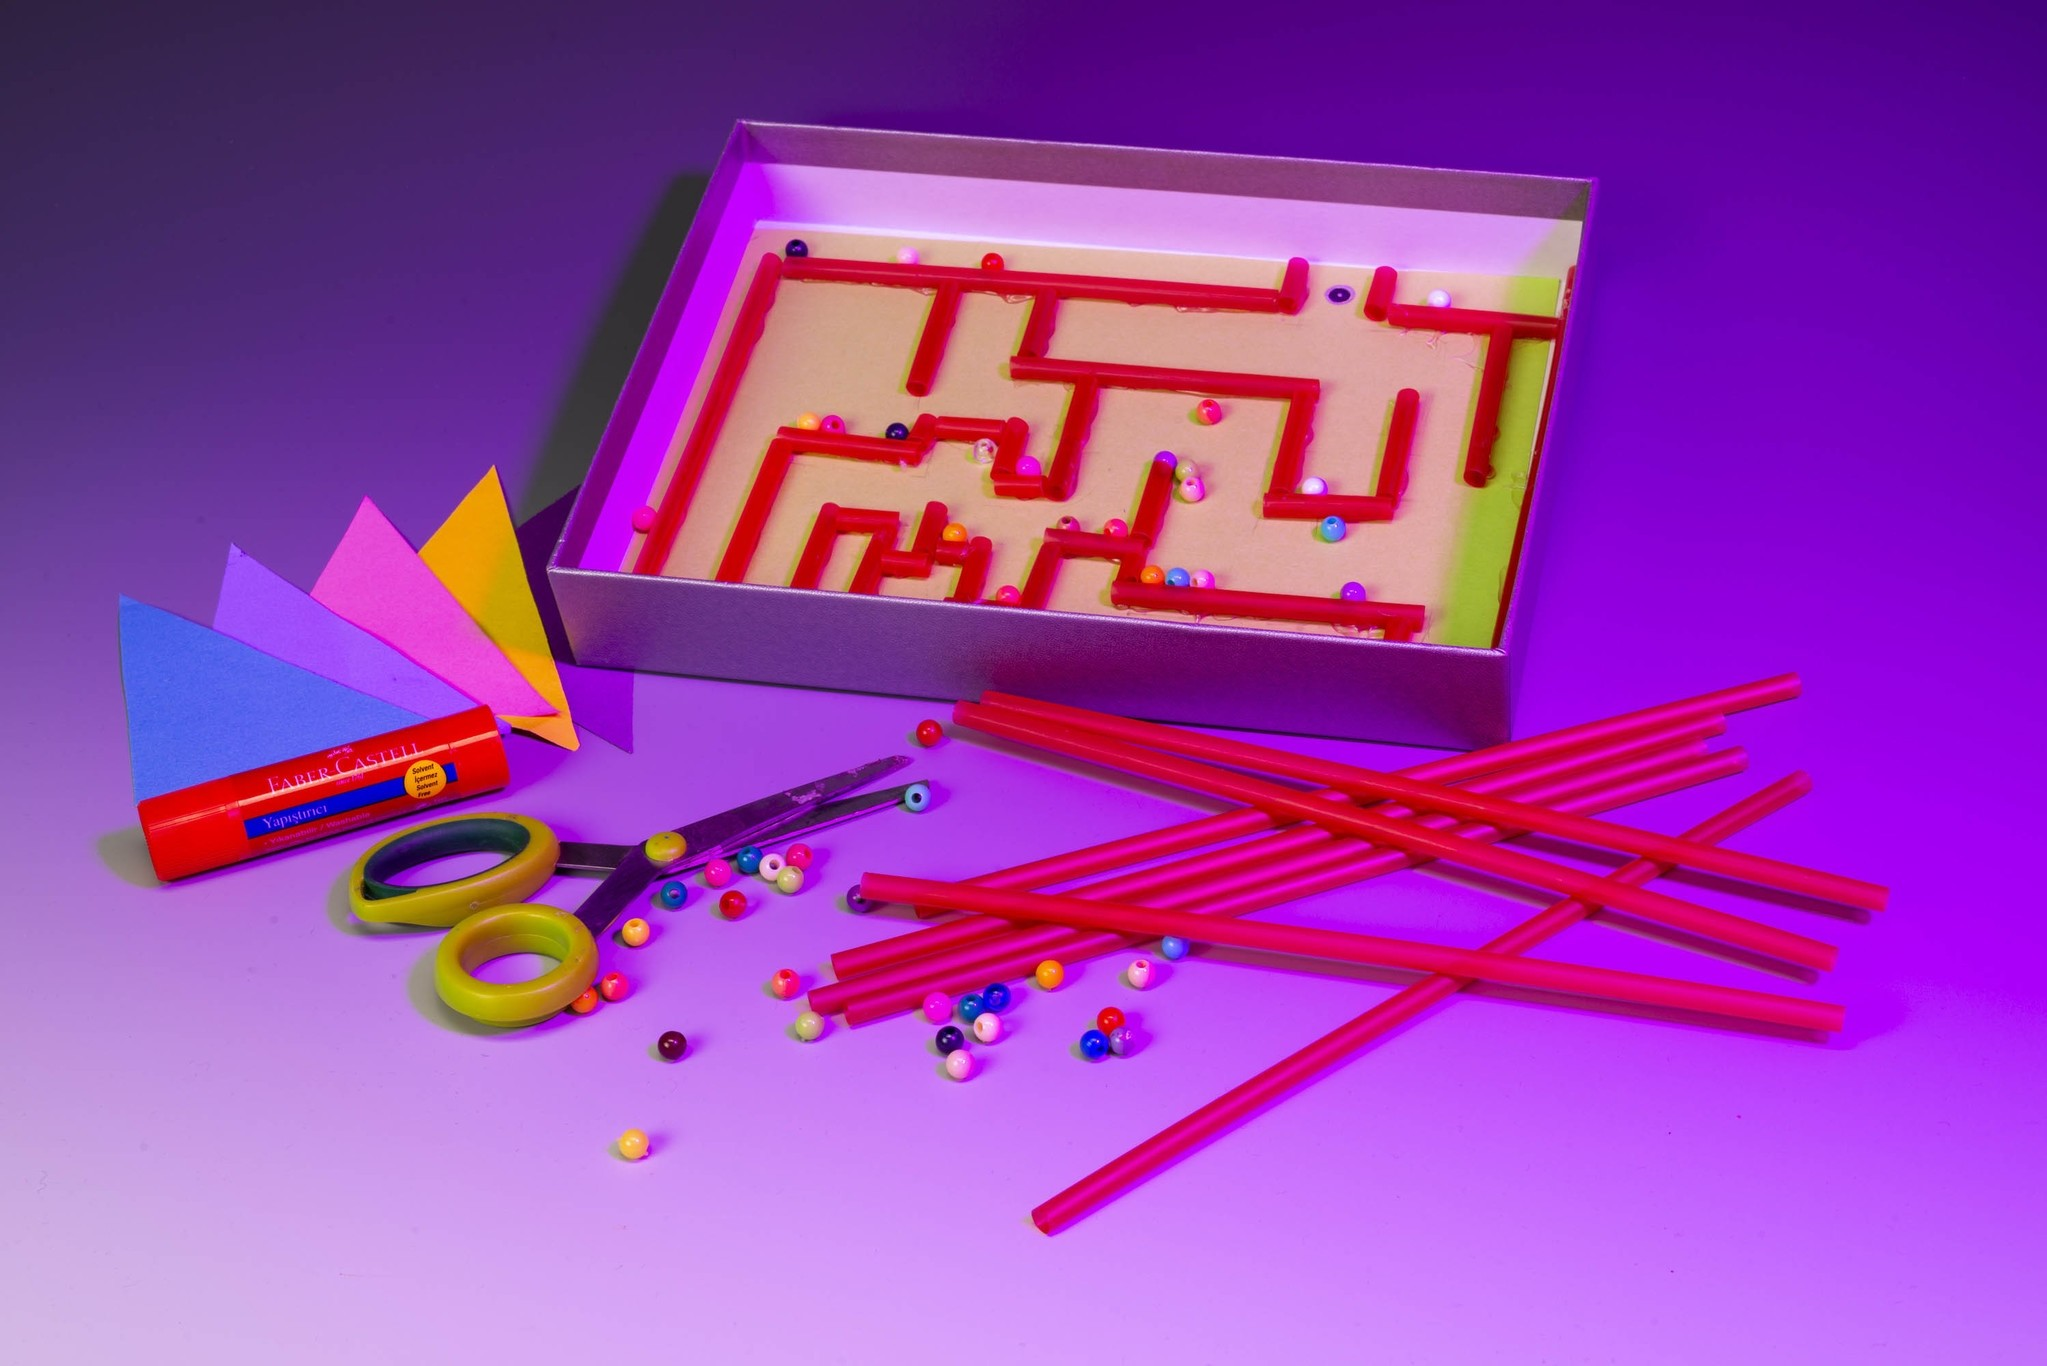 The Labyrinth Game workshop for 7-12 year olds focuses on the concept of measurement.